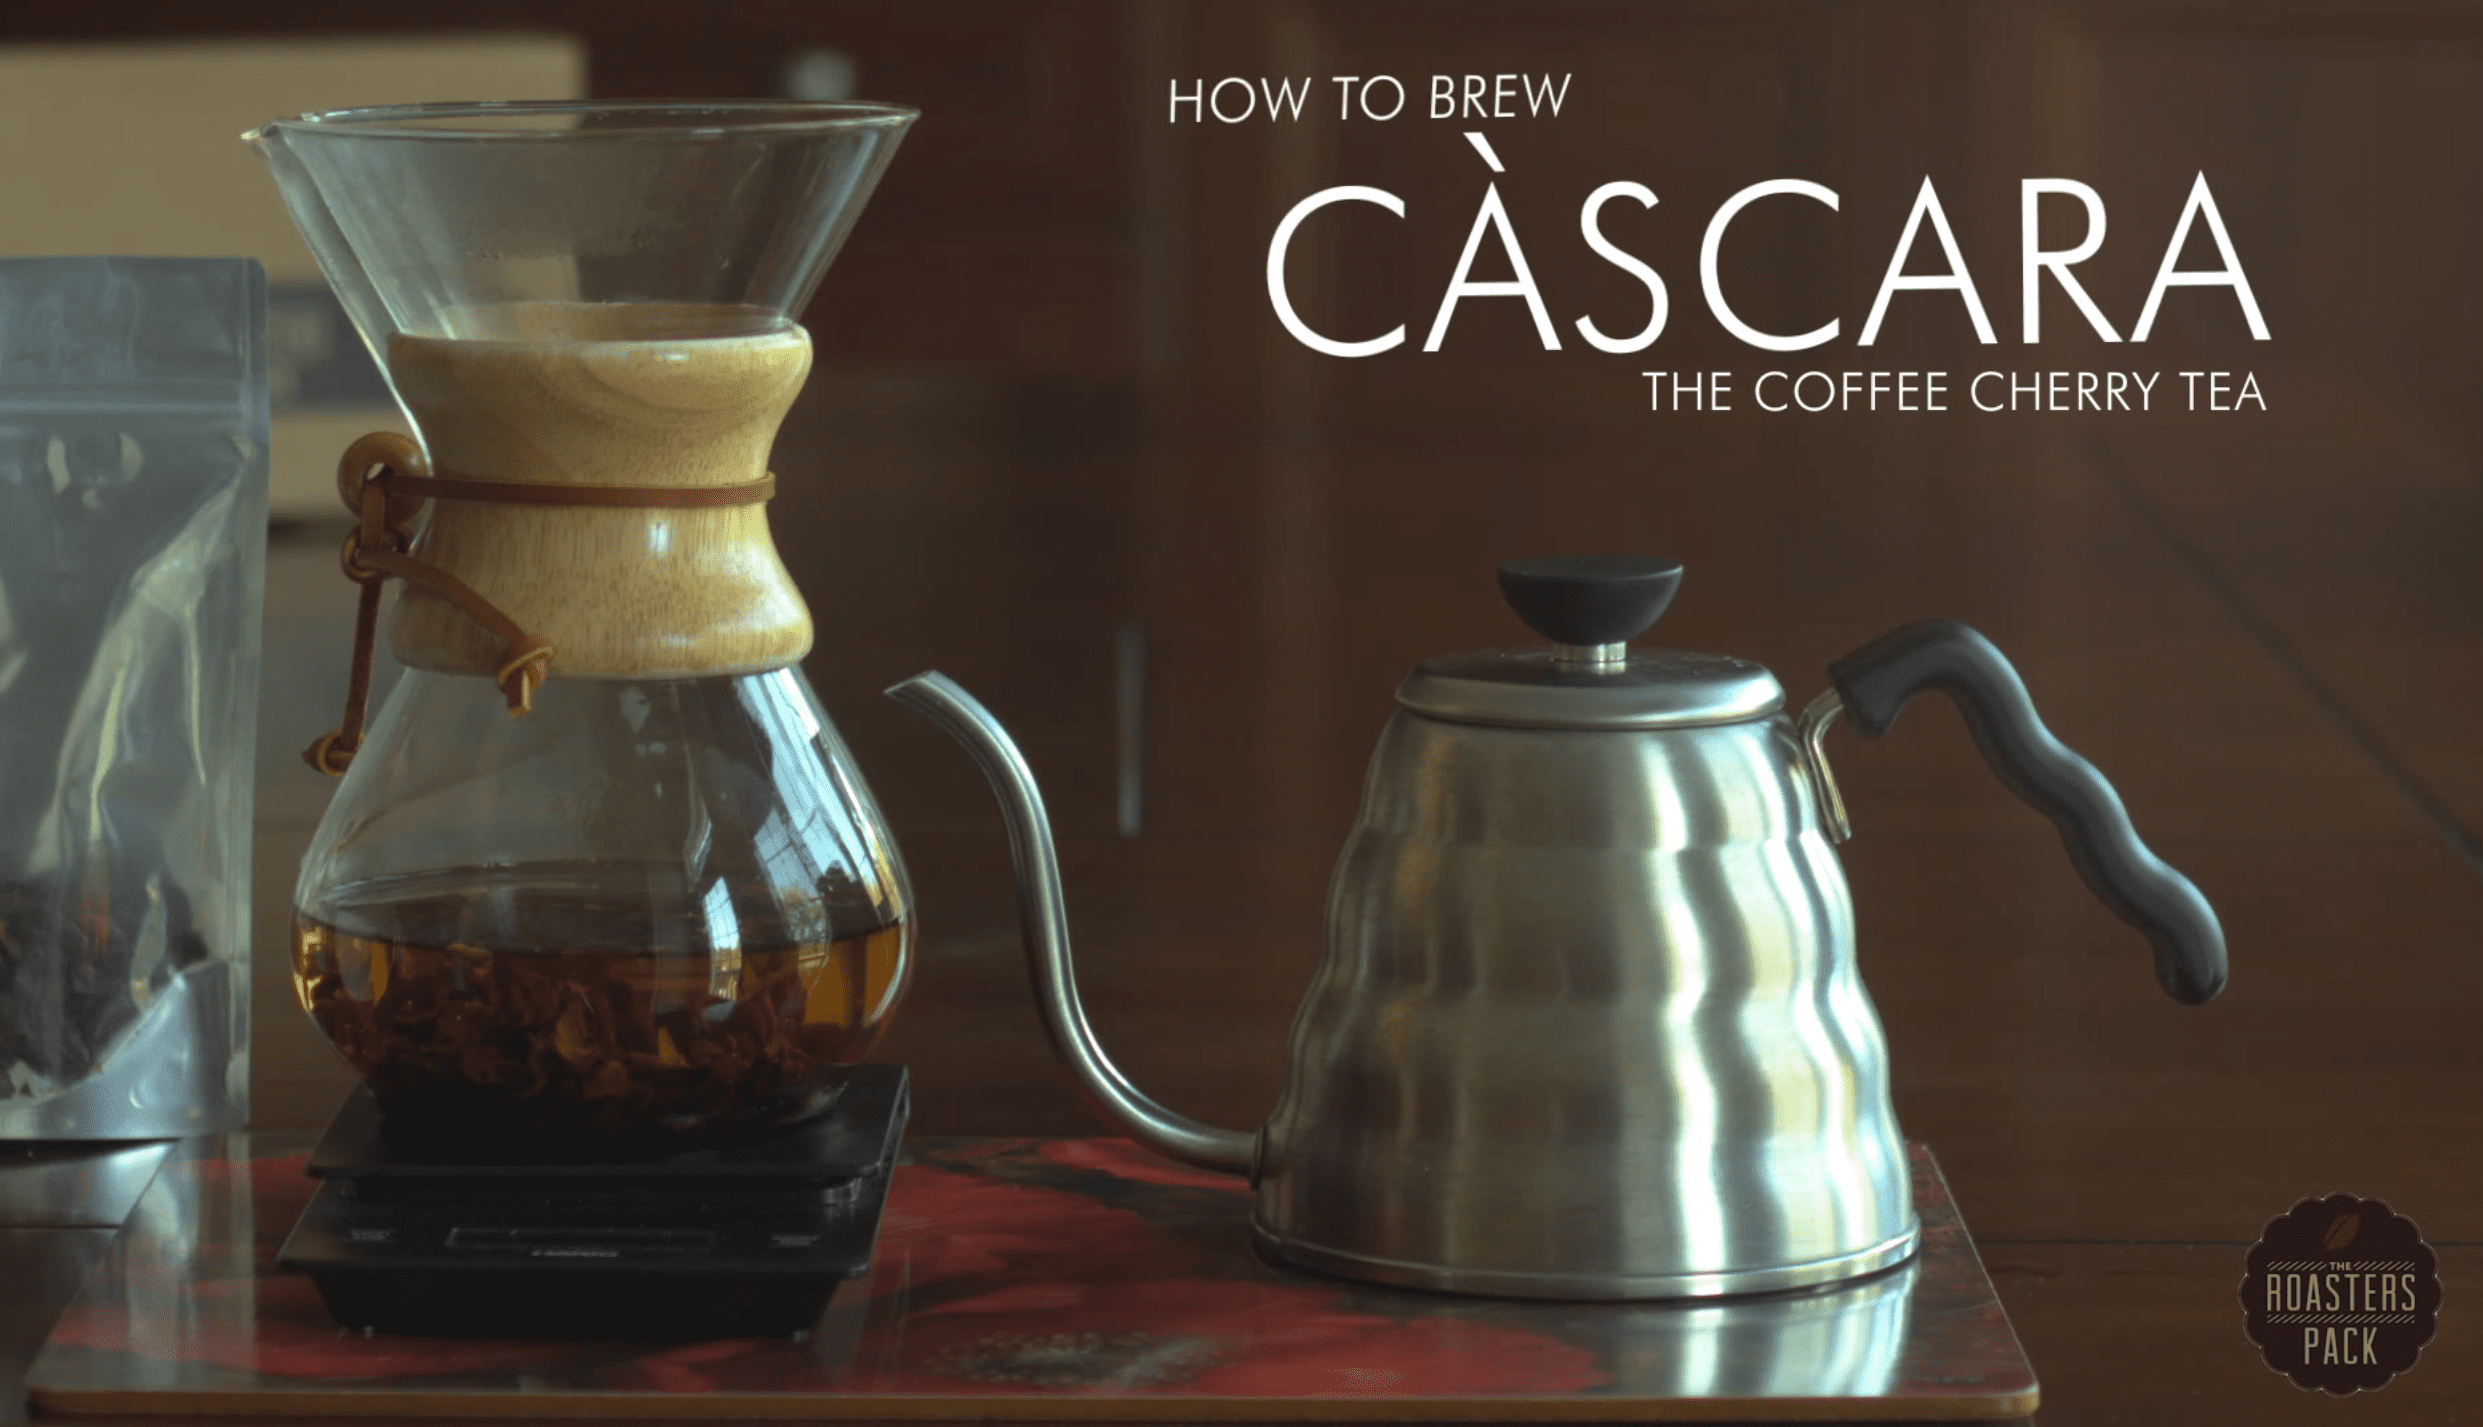 cascara coffee cherry tea brewing guide